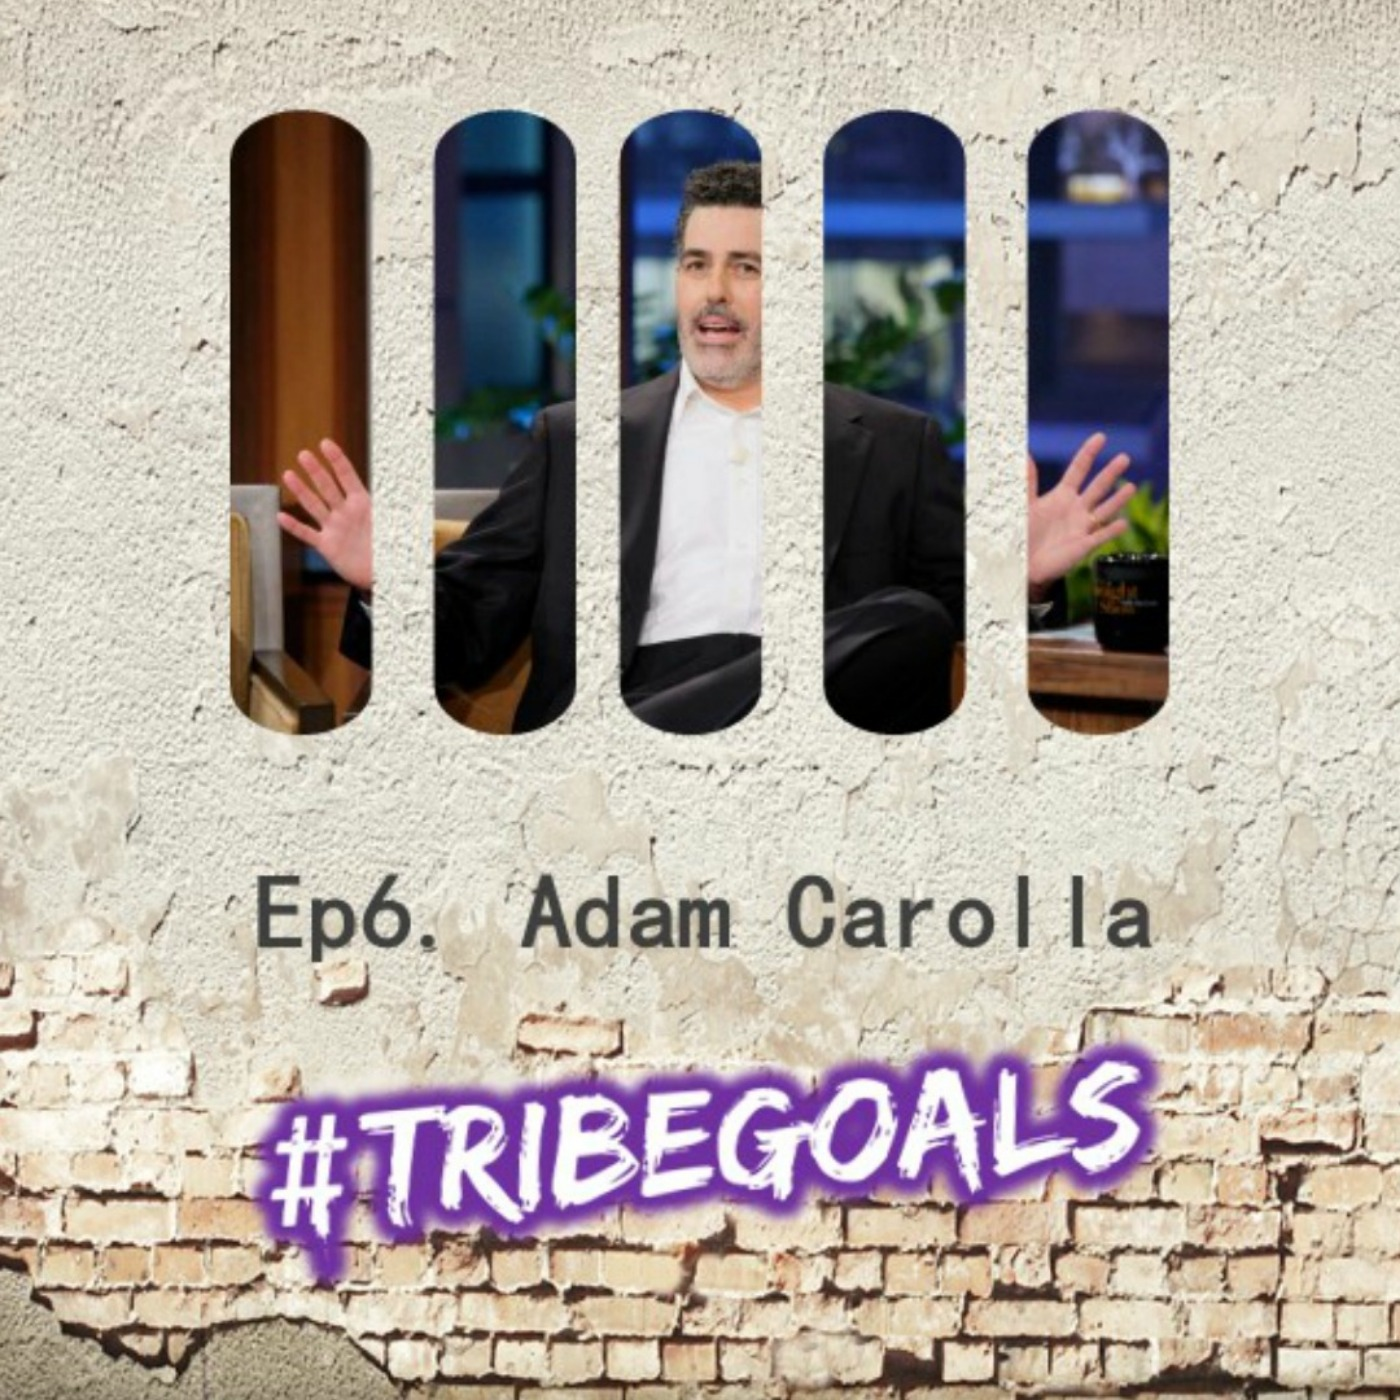 S1. Ep 6. | #TRIBEGOALS with Adam Carolla